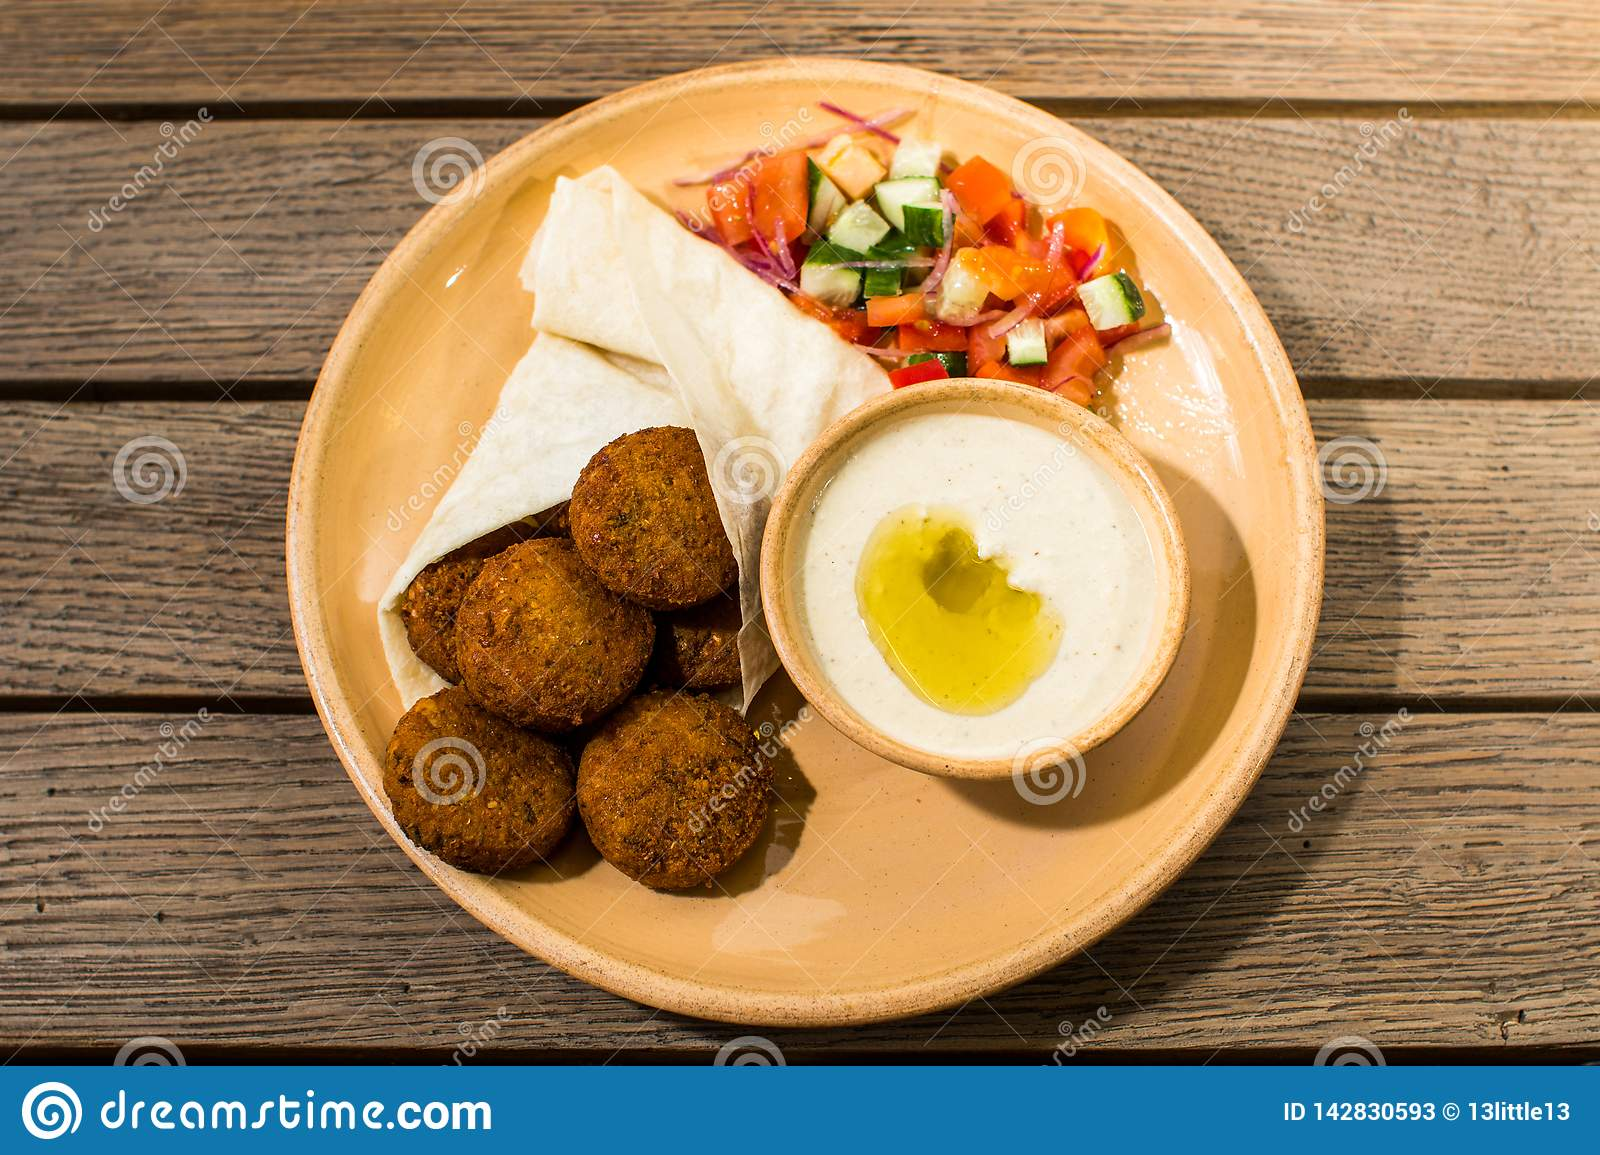 Falafel with salad and sauce